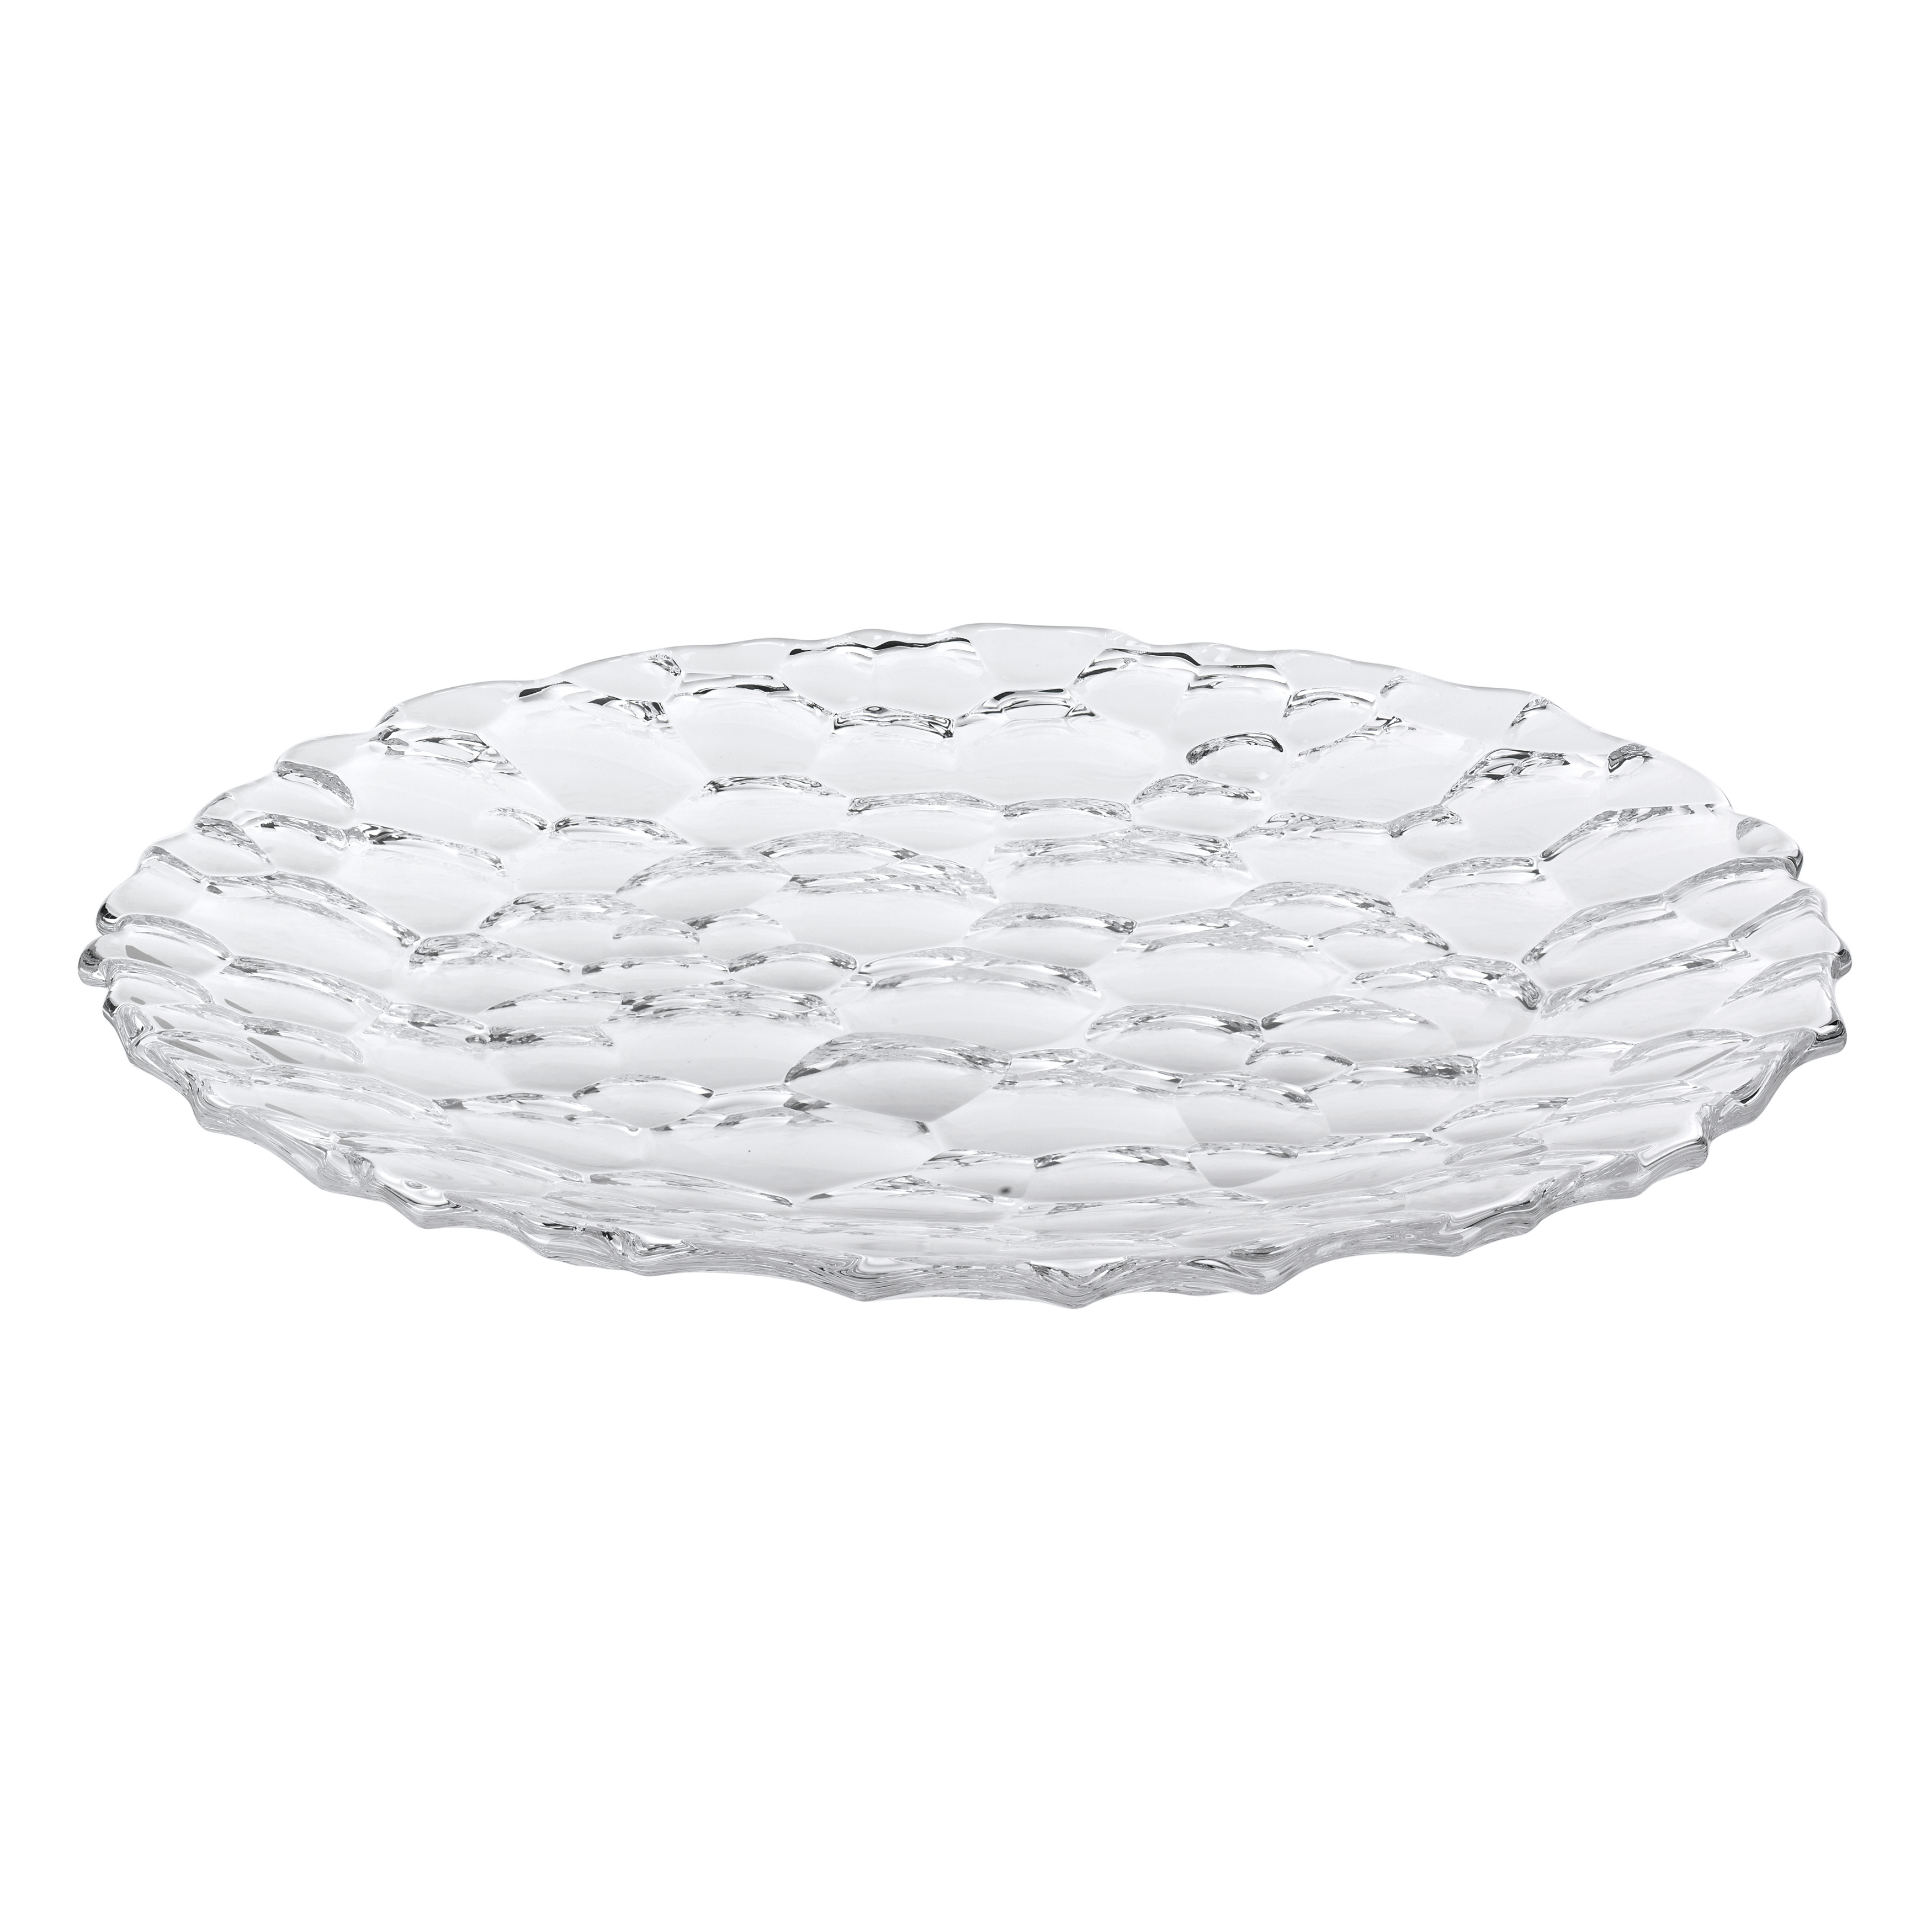 Nachtmann Sphere Non-leaded Crystal 9 Inch Plate, Set of 2